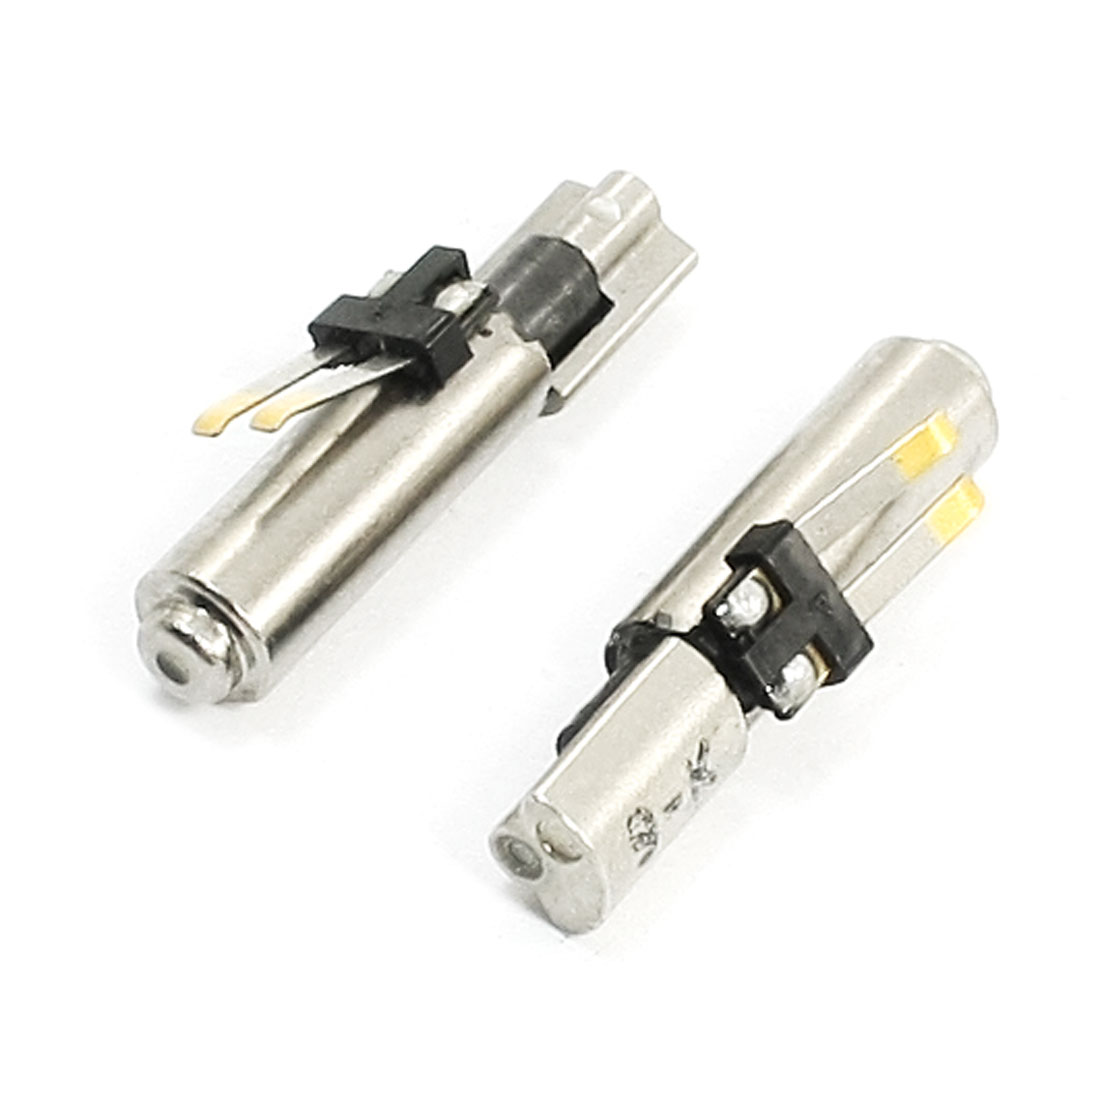 2Pcs-900RPM-Speed-DC-3V-4mm-x-12mm-Micro-Coreless-Vibration-Motor